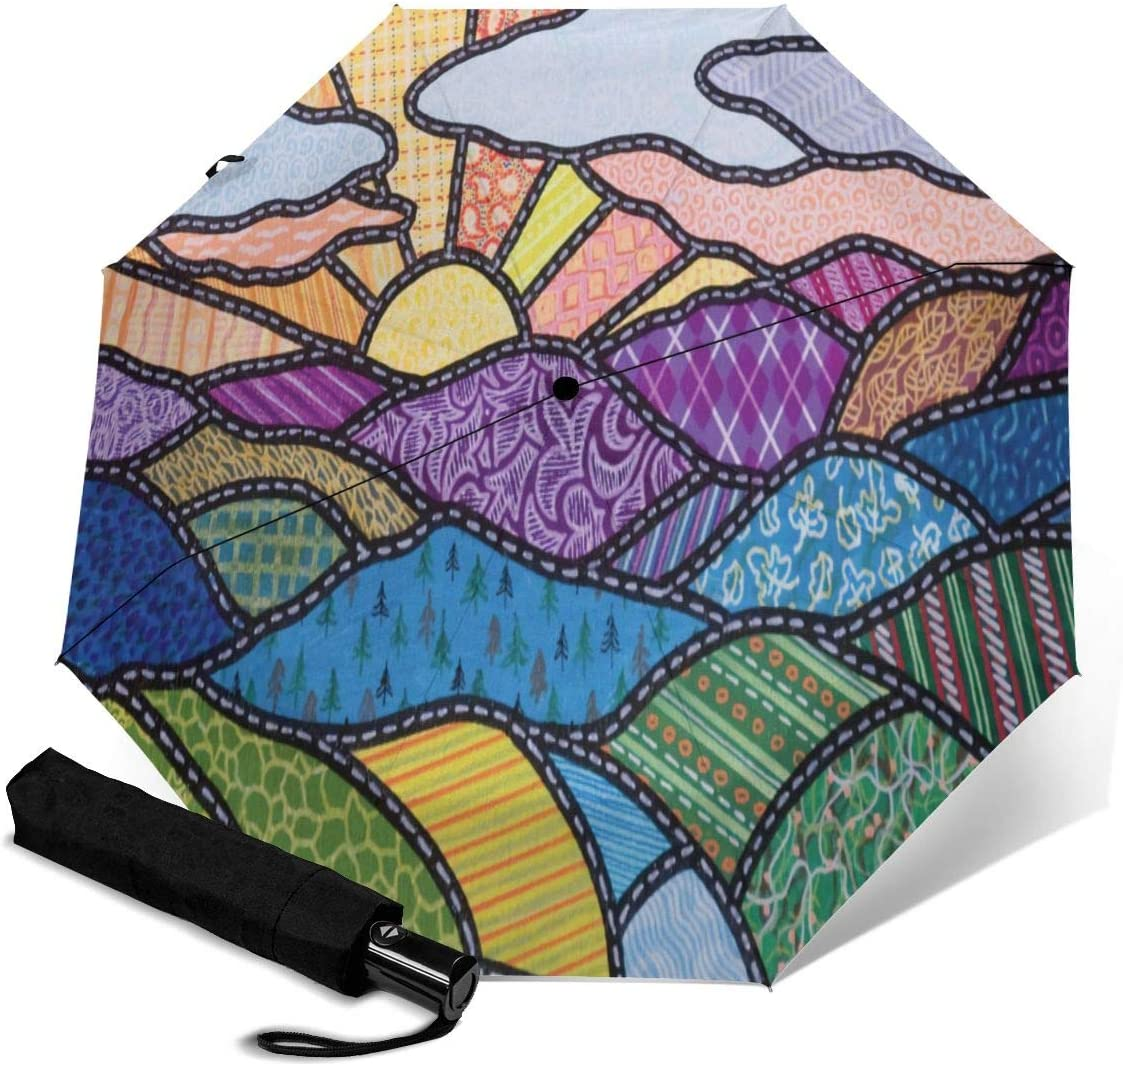 NOT Sturgill Simpson Automatic Tri-fold Umbrella